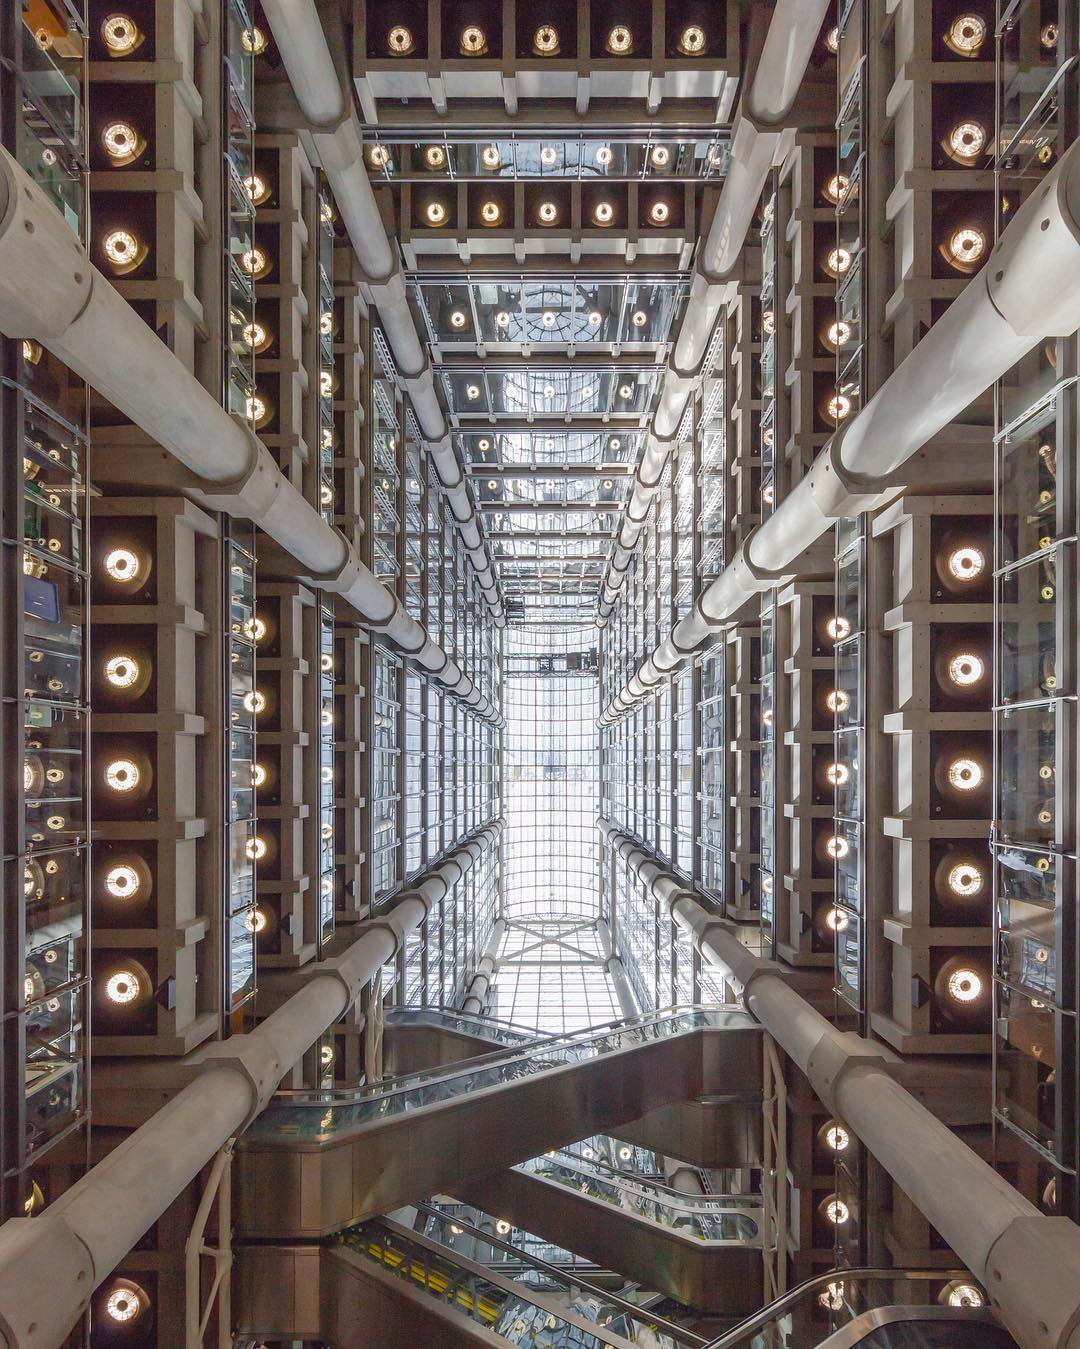 Majestic Architecture Through The Lens Of Philipp Heer